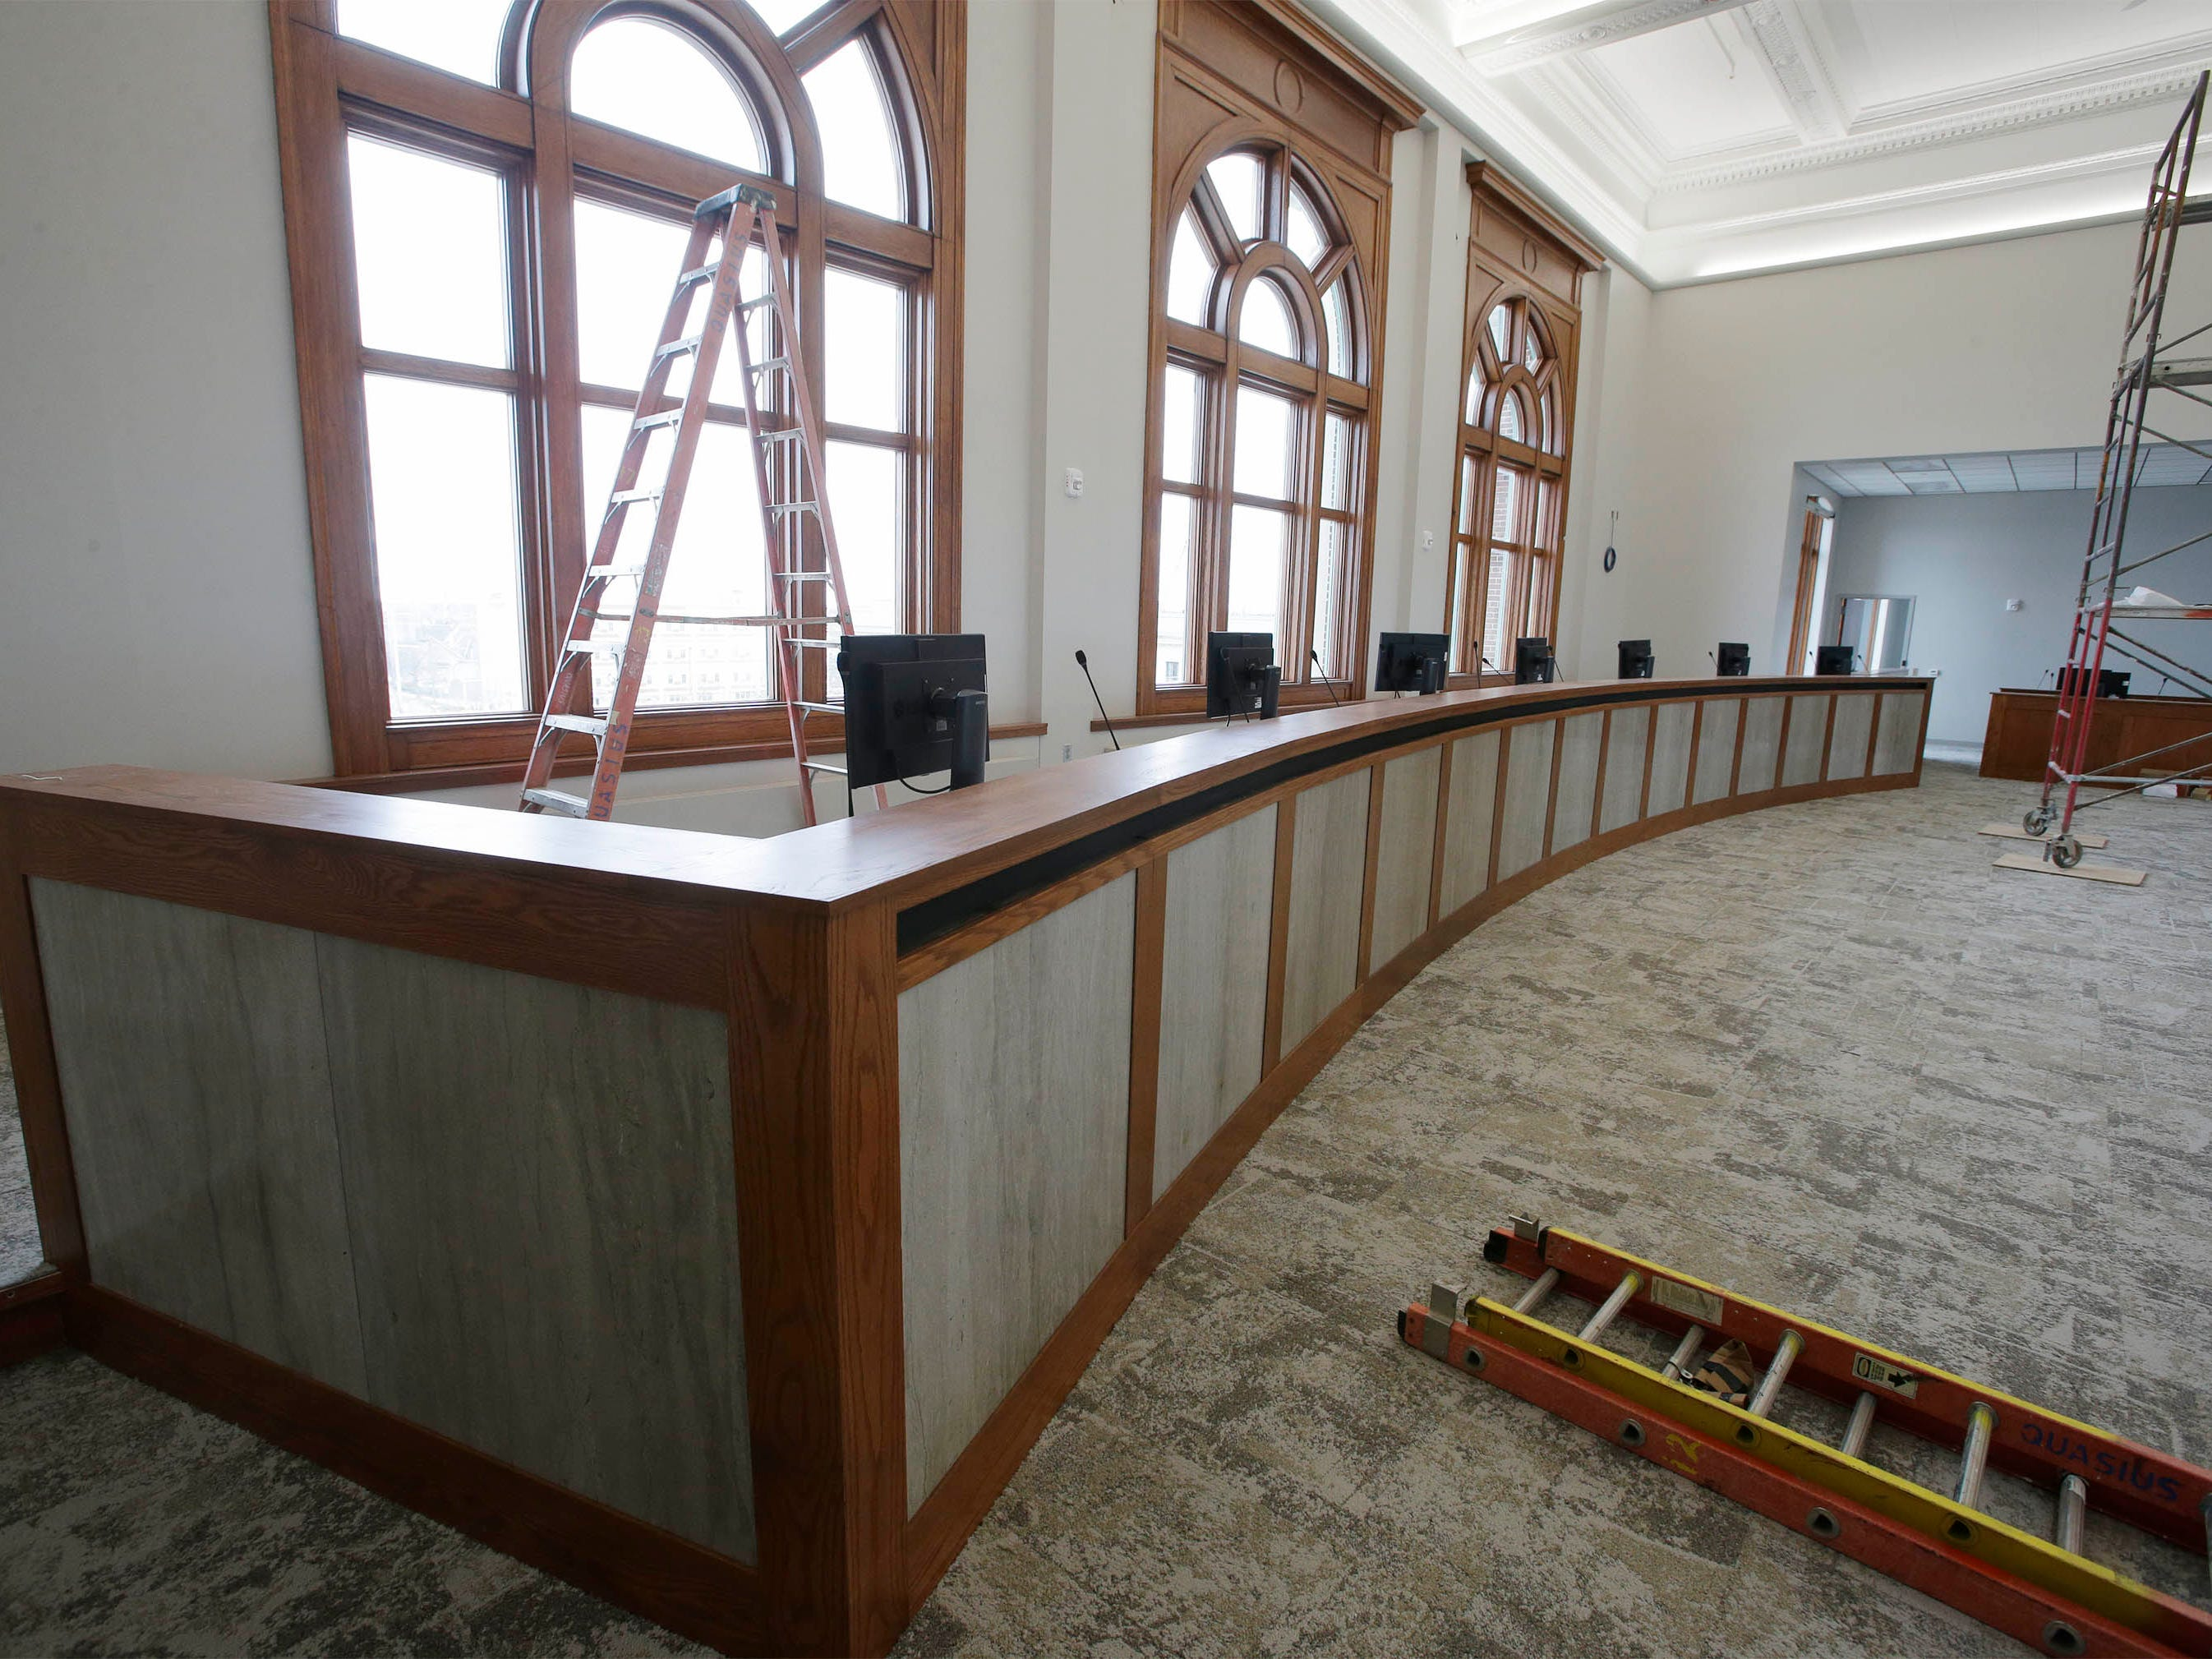 A view of the Sheboygan Council Chambers as seen, Tuesday, May 7, 2019, in Sheboygan, Wis. Extensive remodeling at Sheboygan City Hall has repurposed many old pieces of marble at the facility. In this case the fronts of the council seats.